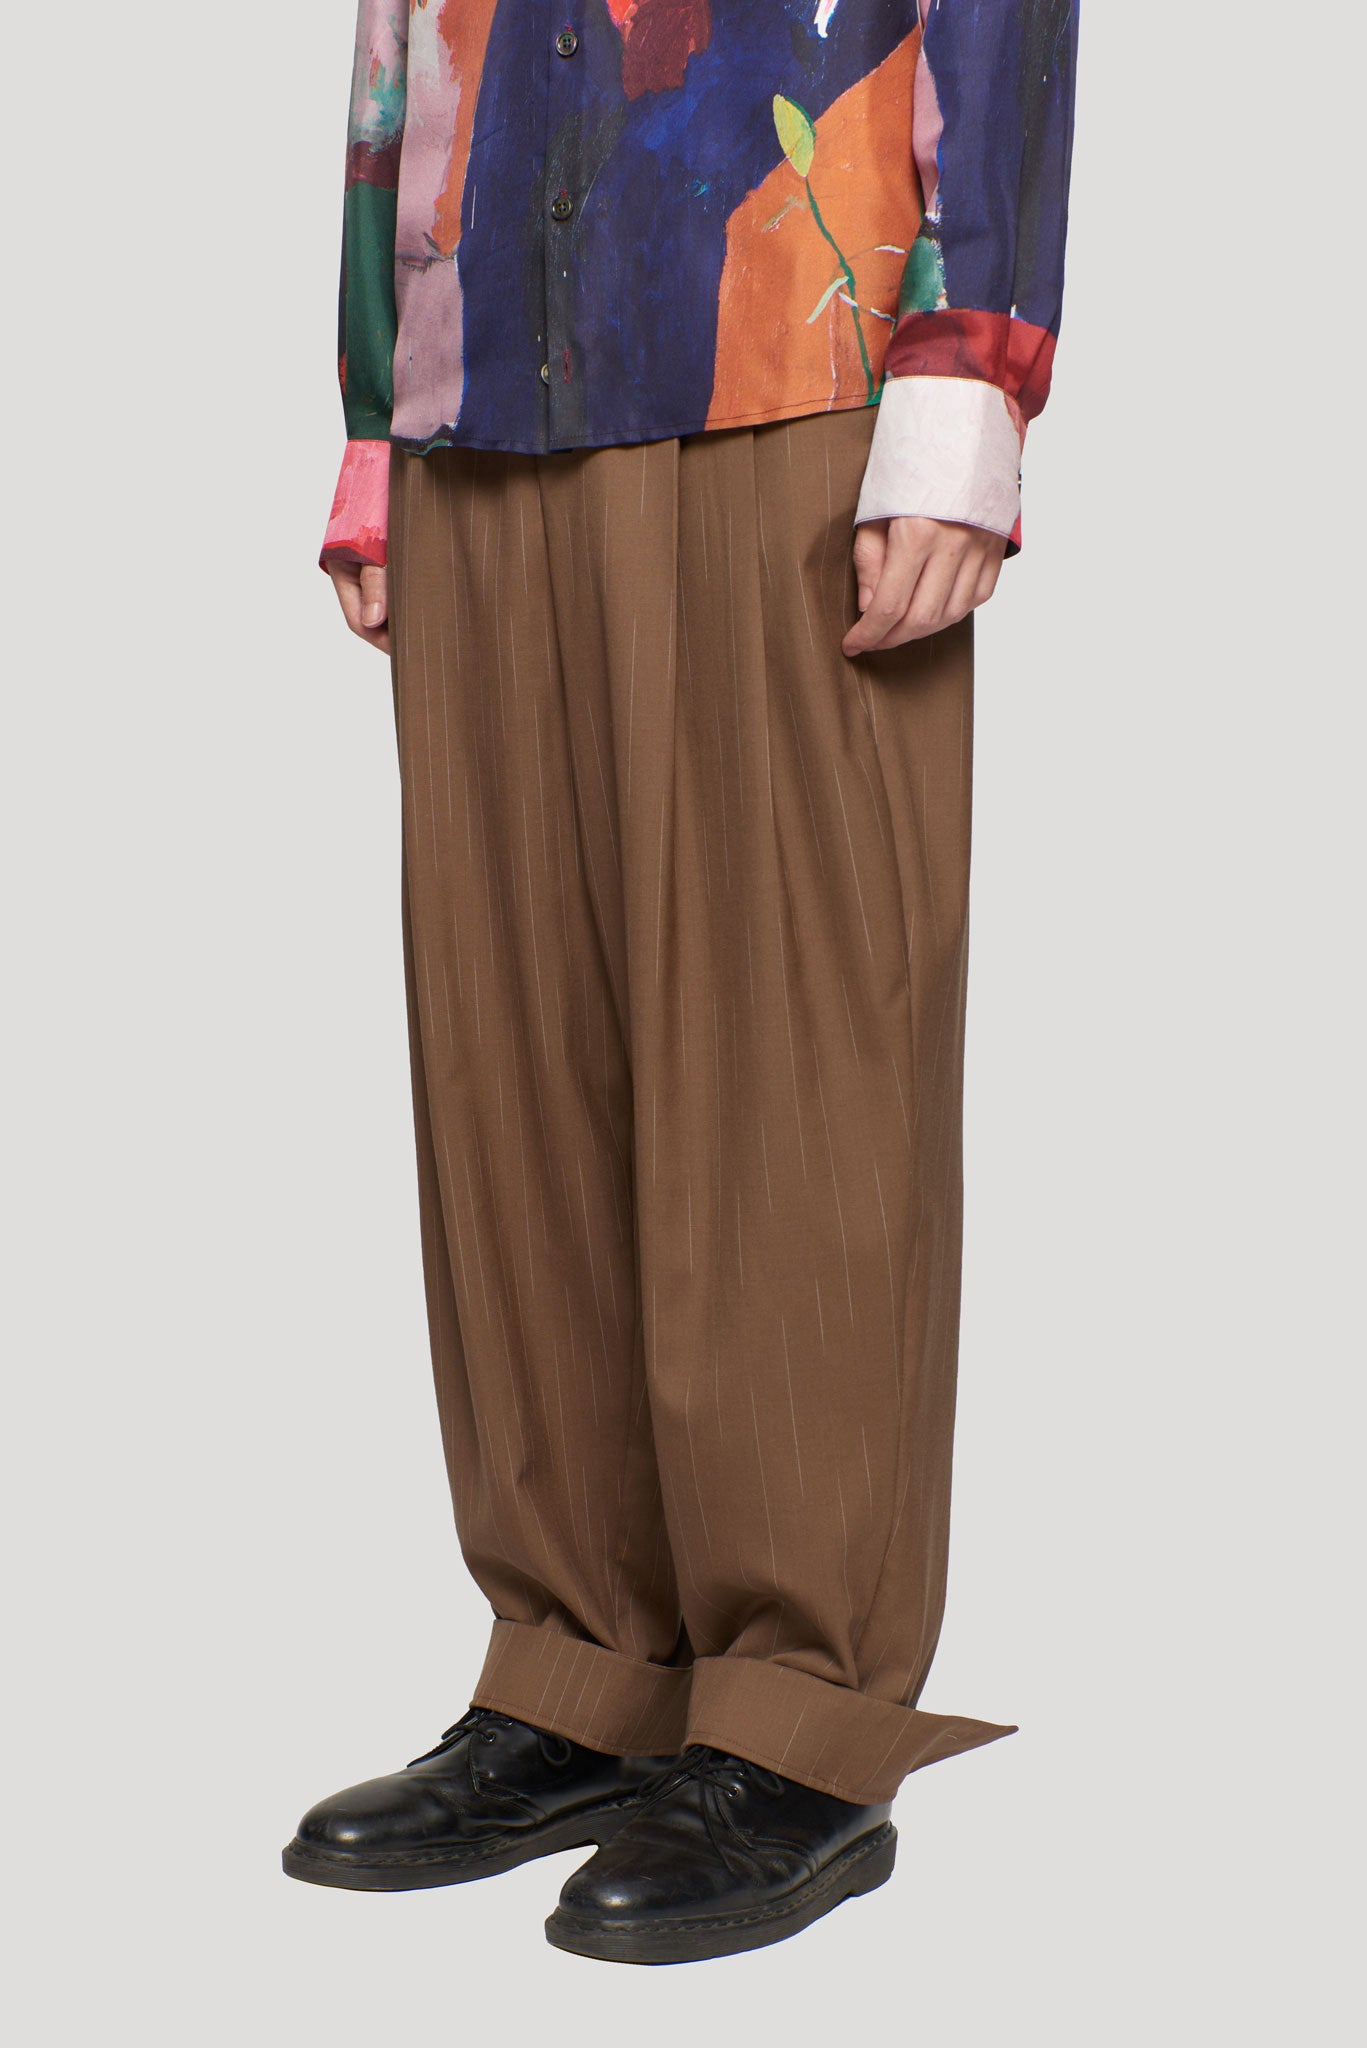 Dan Wide Leg Carrot Double Layer Trouser Safari Pastel Blue Teardrop Stripe